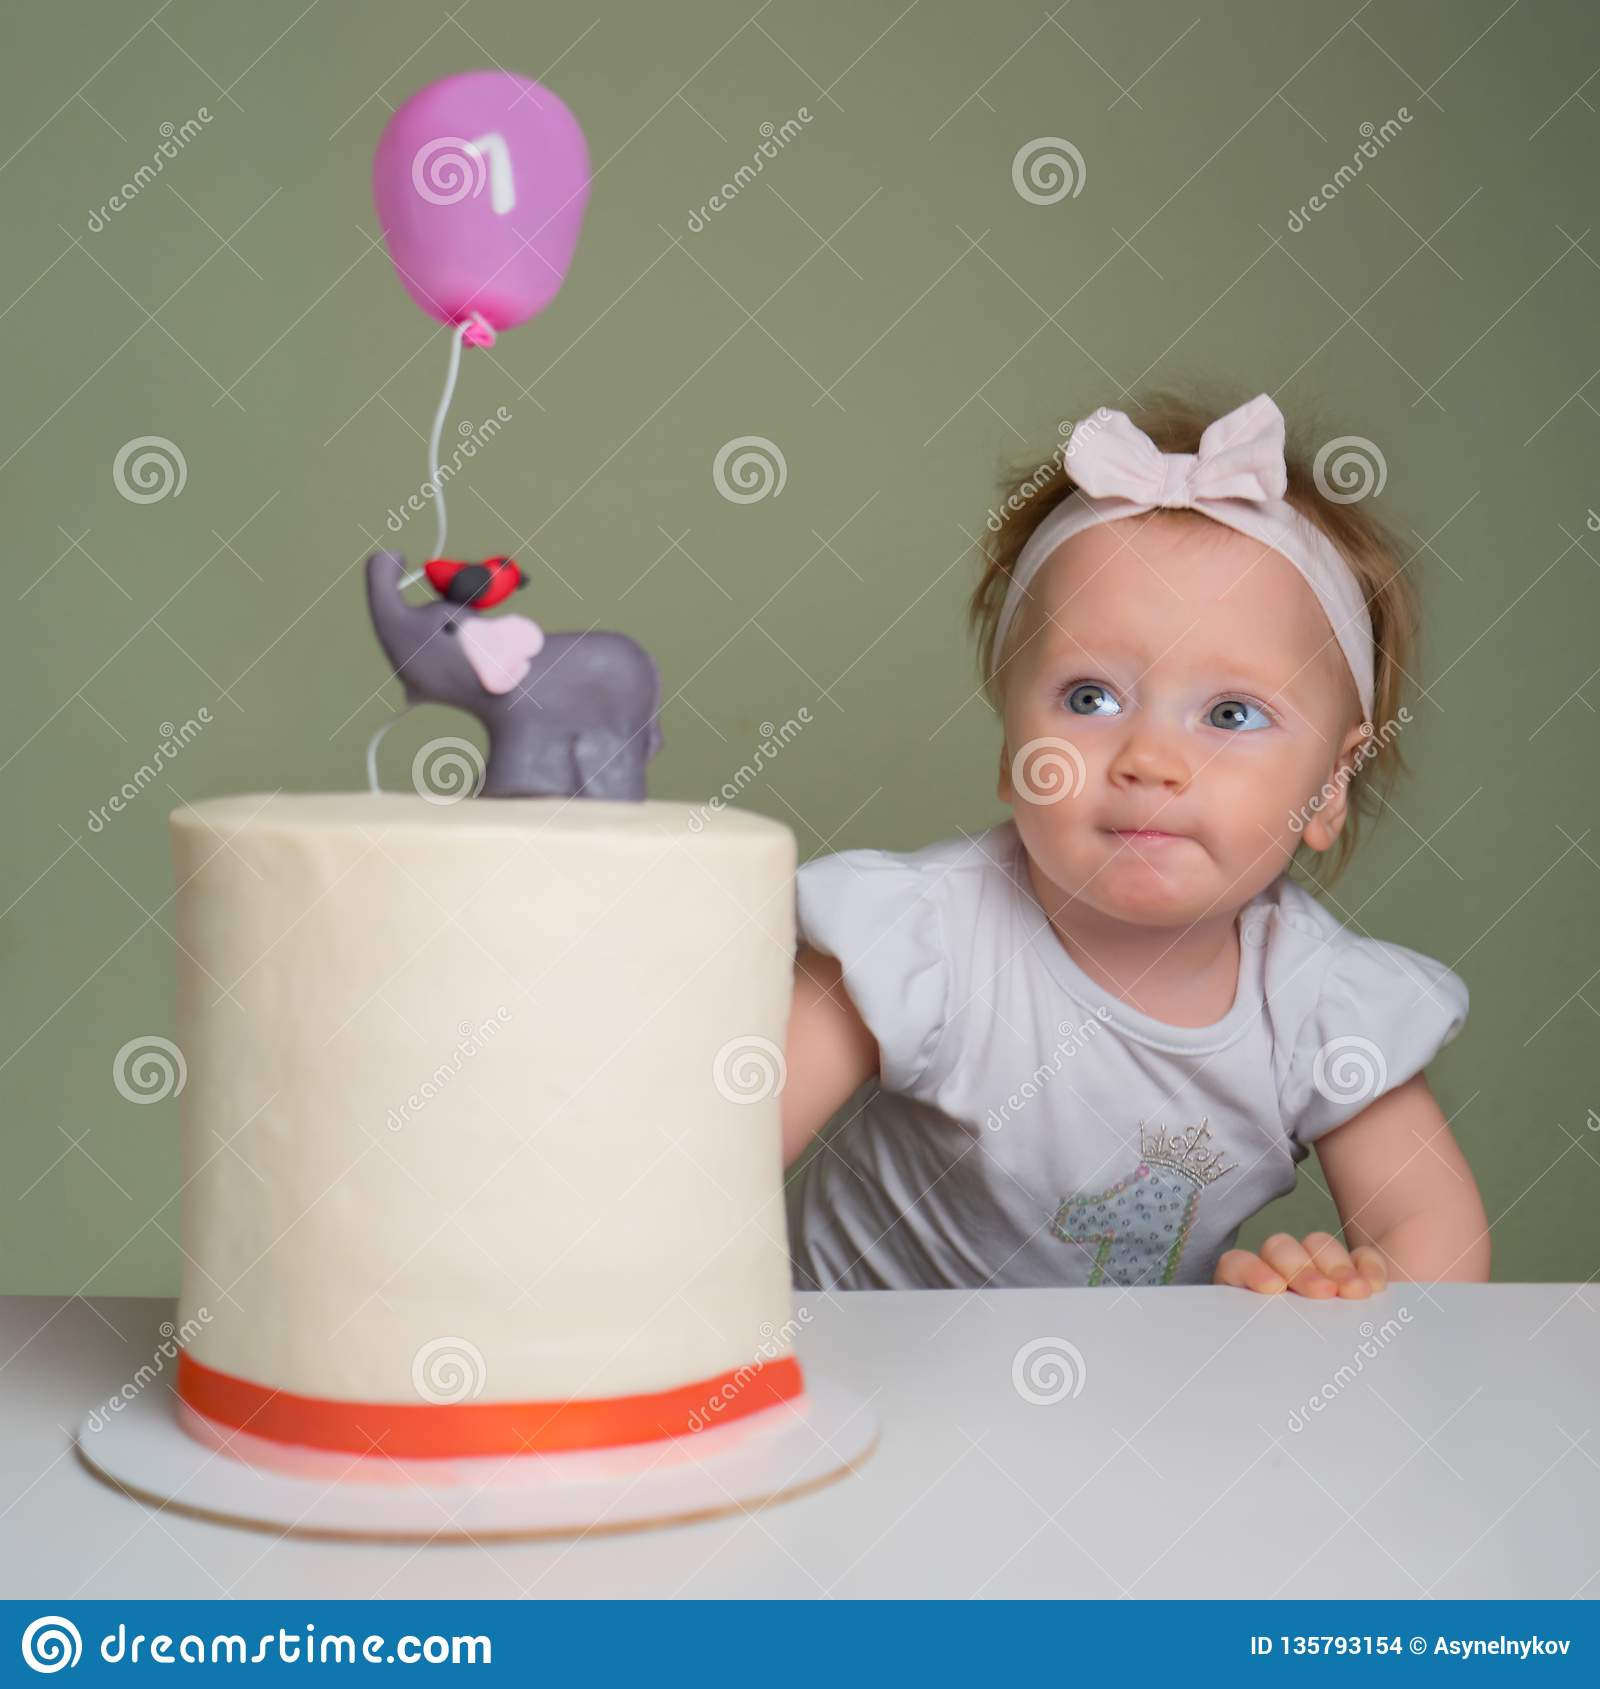 Positive Emotions On The Face Of Little Girl Looking At Birthday Cake With Number One It Smiling Toddler Pie